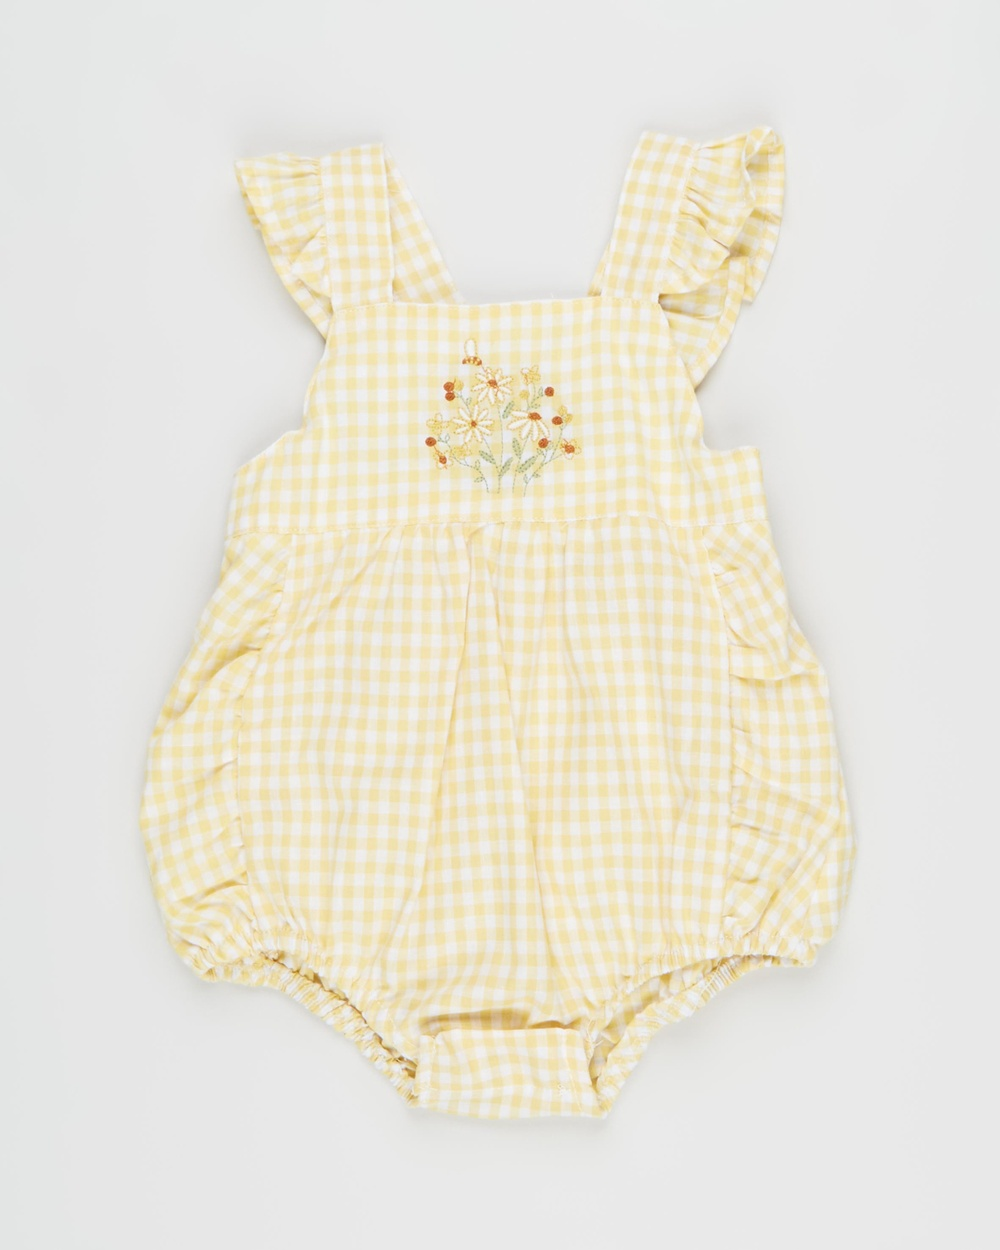 Bebe by Minihaha Chloe Gingham Playsuit Babies Jumpsuits & Playsuits Yellow